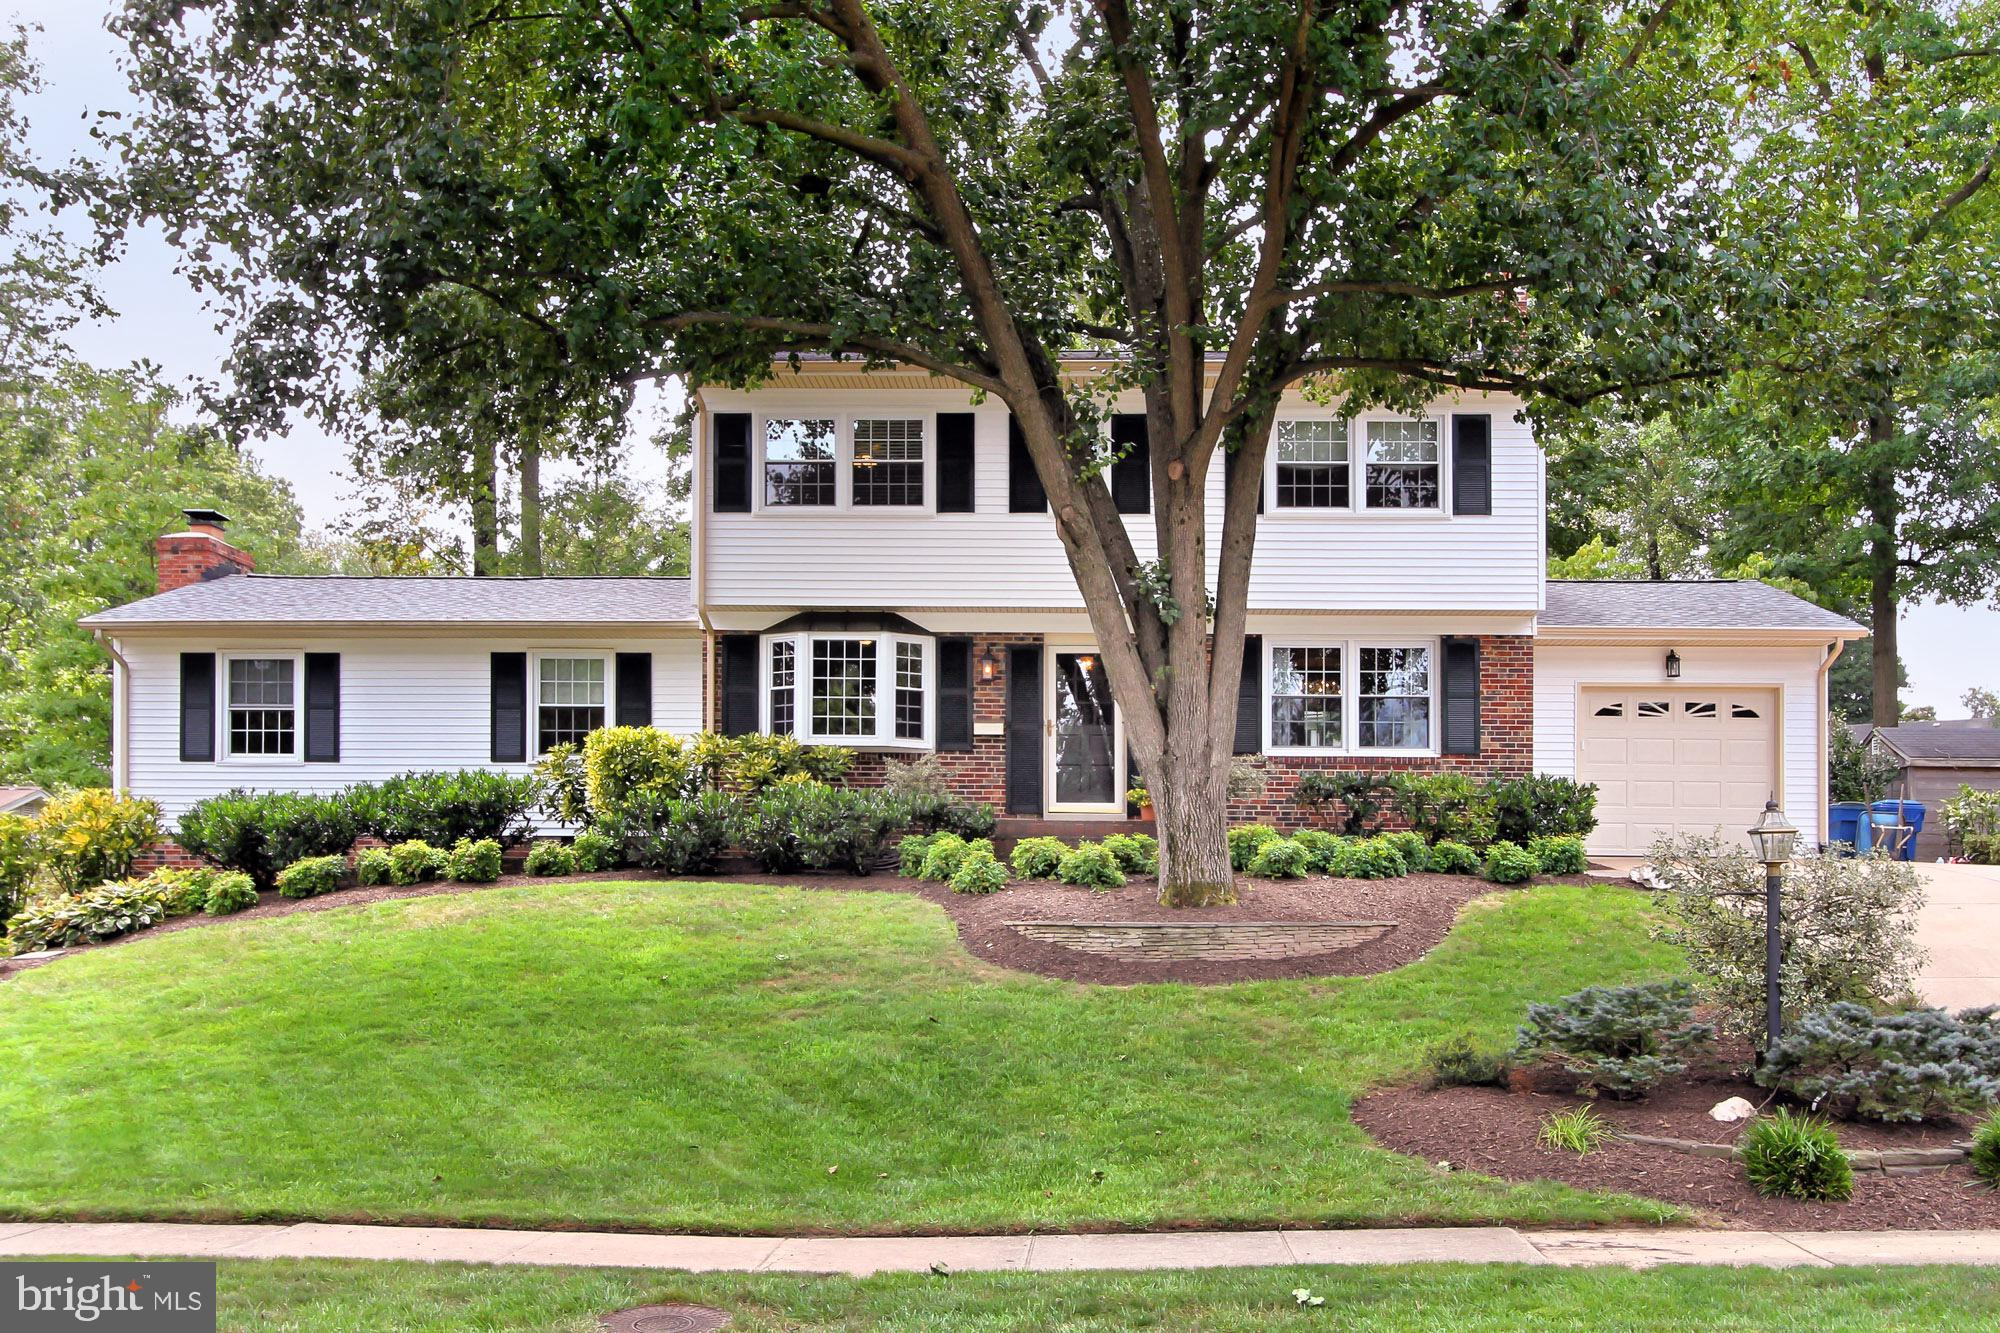 Extensively updated and meticulously maintained Colonial sited beautifully on lushly landscaped lot. These long-time owners spared no expense caring and improving their gorgous home. From the gracious entry, the formal banquet size dining room, the cook's kitchen and the oversized family room, this home will Wow you from the moment you enter. The master suite features custom built-ins, cozy window seat with storage, vaulted ceiling and walk-in closet. My favorite space in this home has to be the incredible screened porch where you can relax and enjoy the many varieties of flowering shrubs and mature trees. Off the porch is a large deck, stone walkway and shed. Professionally designed and installed landscape features multiple stone walls. This home is NOT to be missed! OPEN SUN 9/8